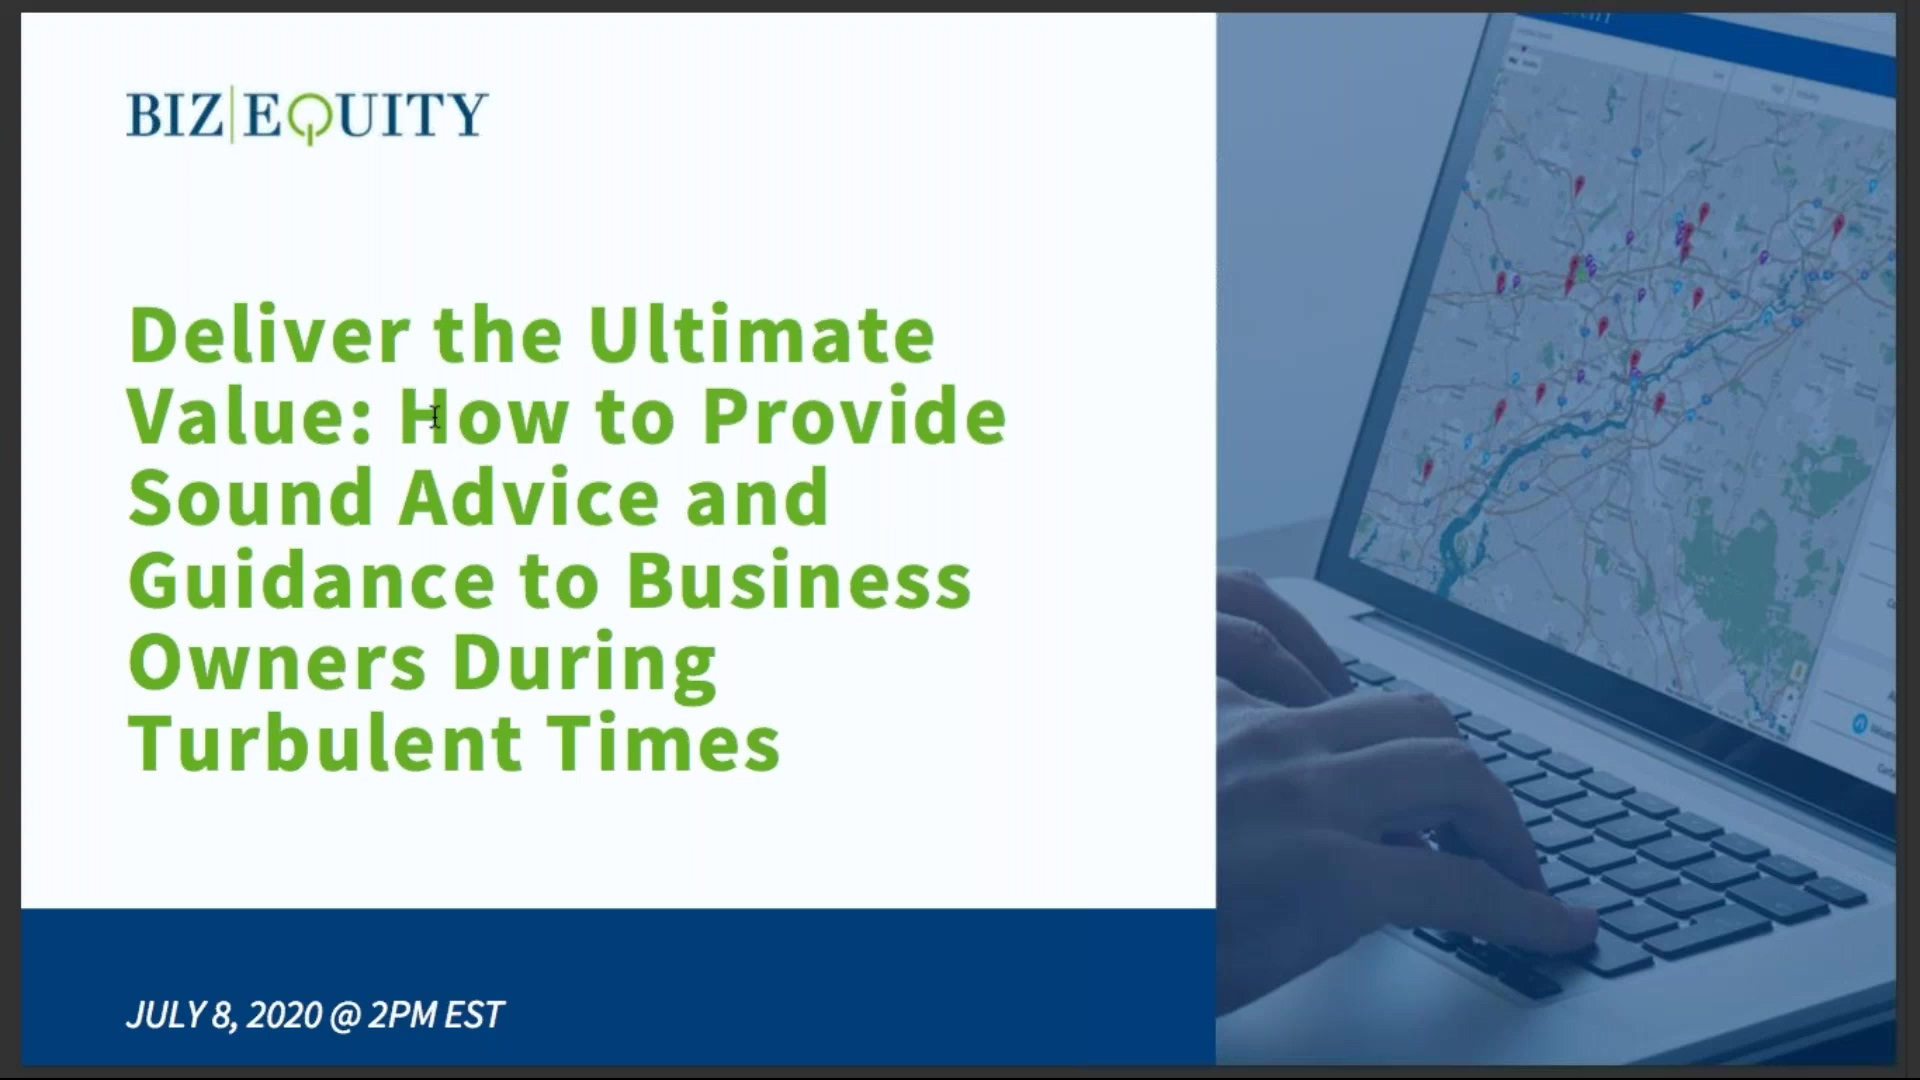 Deliver the Ultimate Value_ How to Provide Sound Advice and Guidance to Business Owners During Turbu